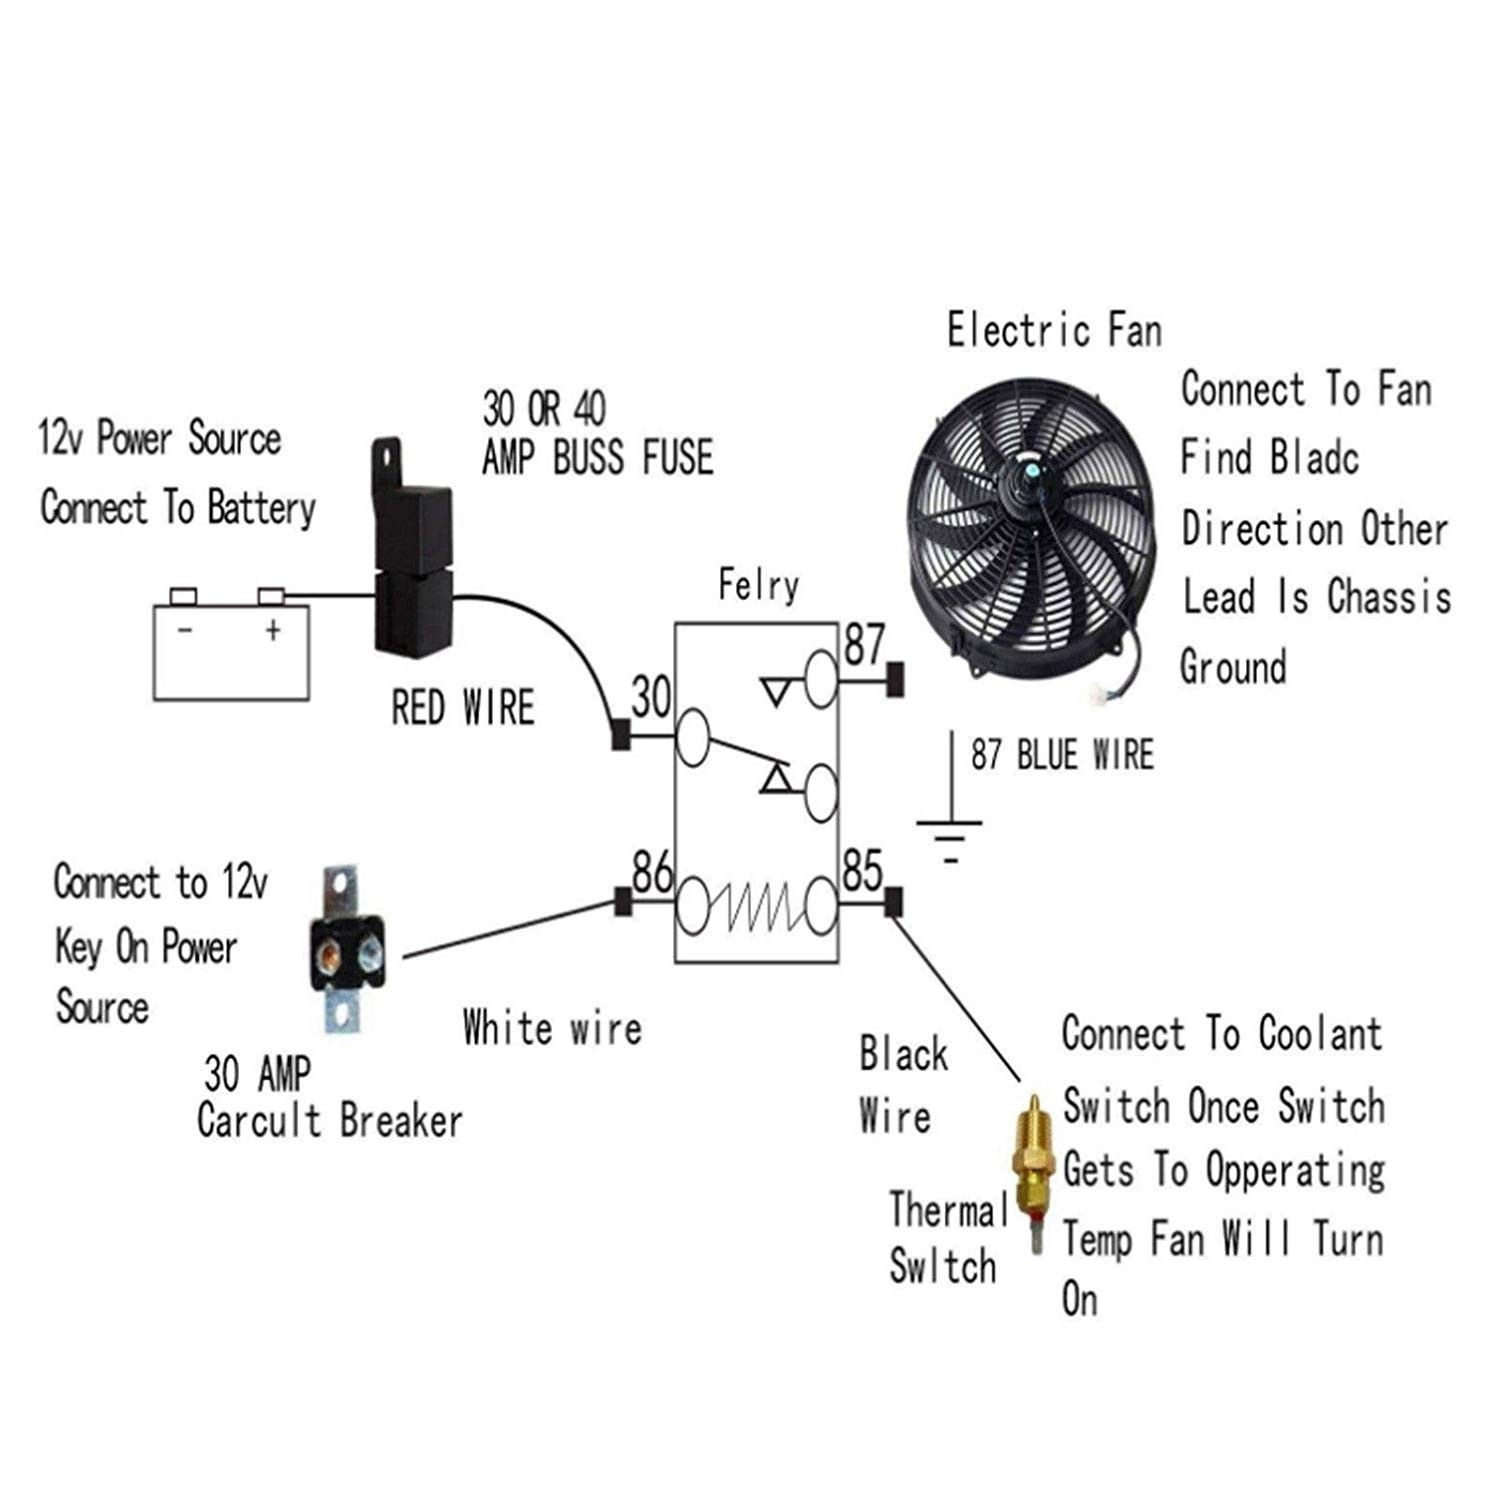 Unique Wiring Diagram Of An Electric Fan Diagram Diagramsample Diagramtemplate Wiringdiagram Diagramchart Worksheet Works Electric Fan Electricity Relay